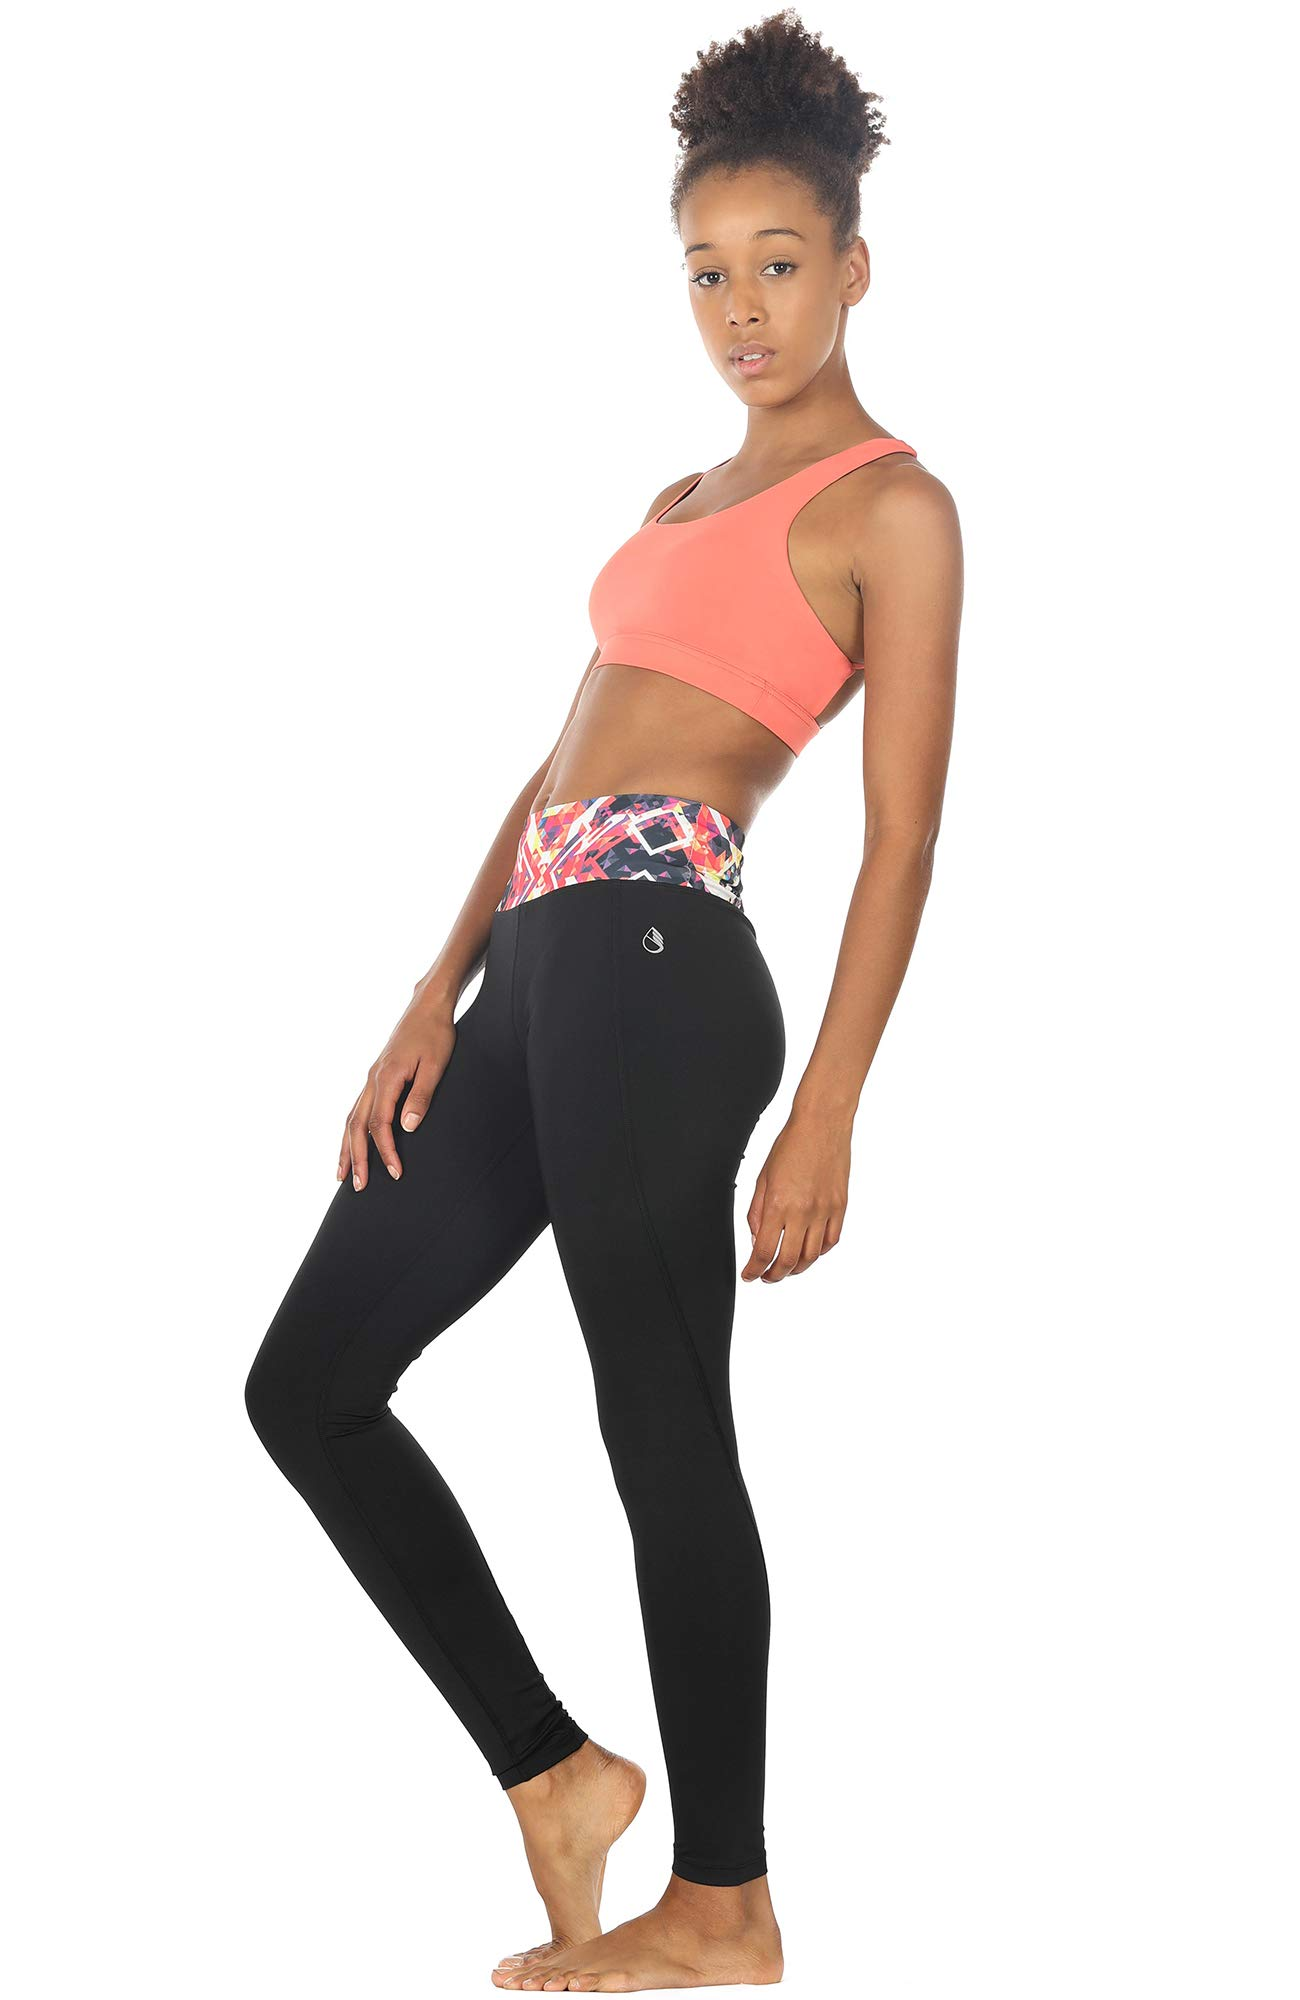 icyzone Women\'s Activewear Yoga Running Workout Pants Leggings Slim Fitted Tights (S, Prismatic)